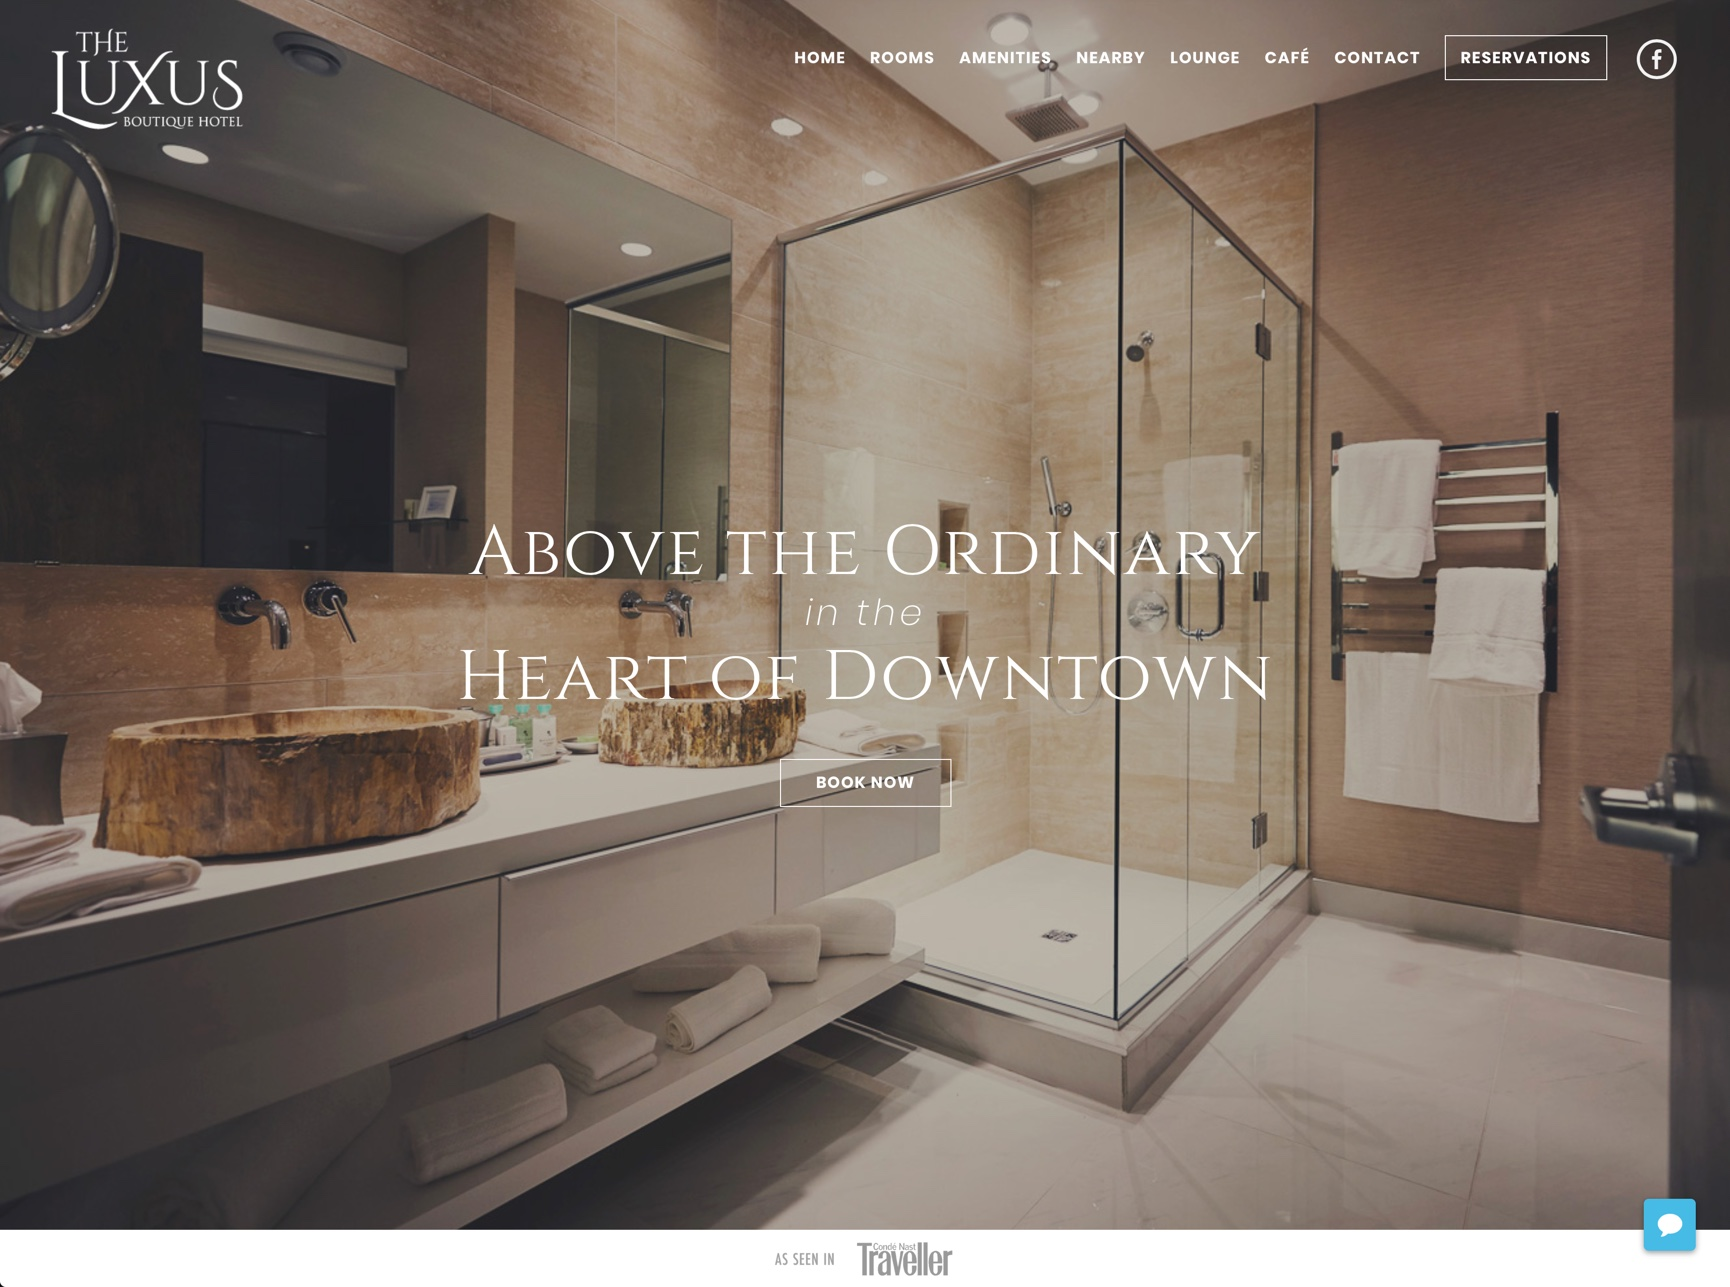 Luxus Design The Luxus Boutique Hotel Lounge Website Big Bright Sun